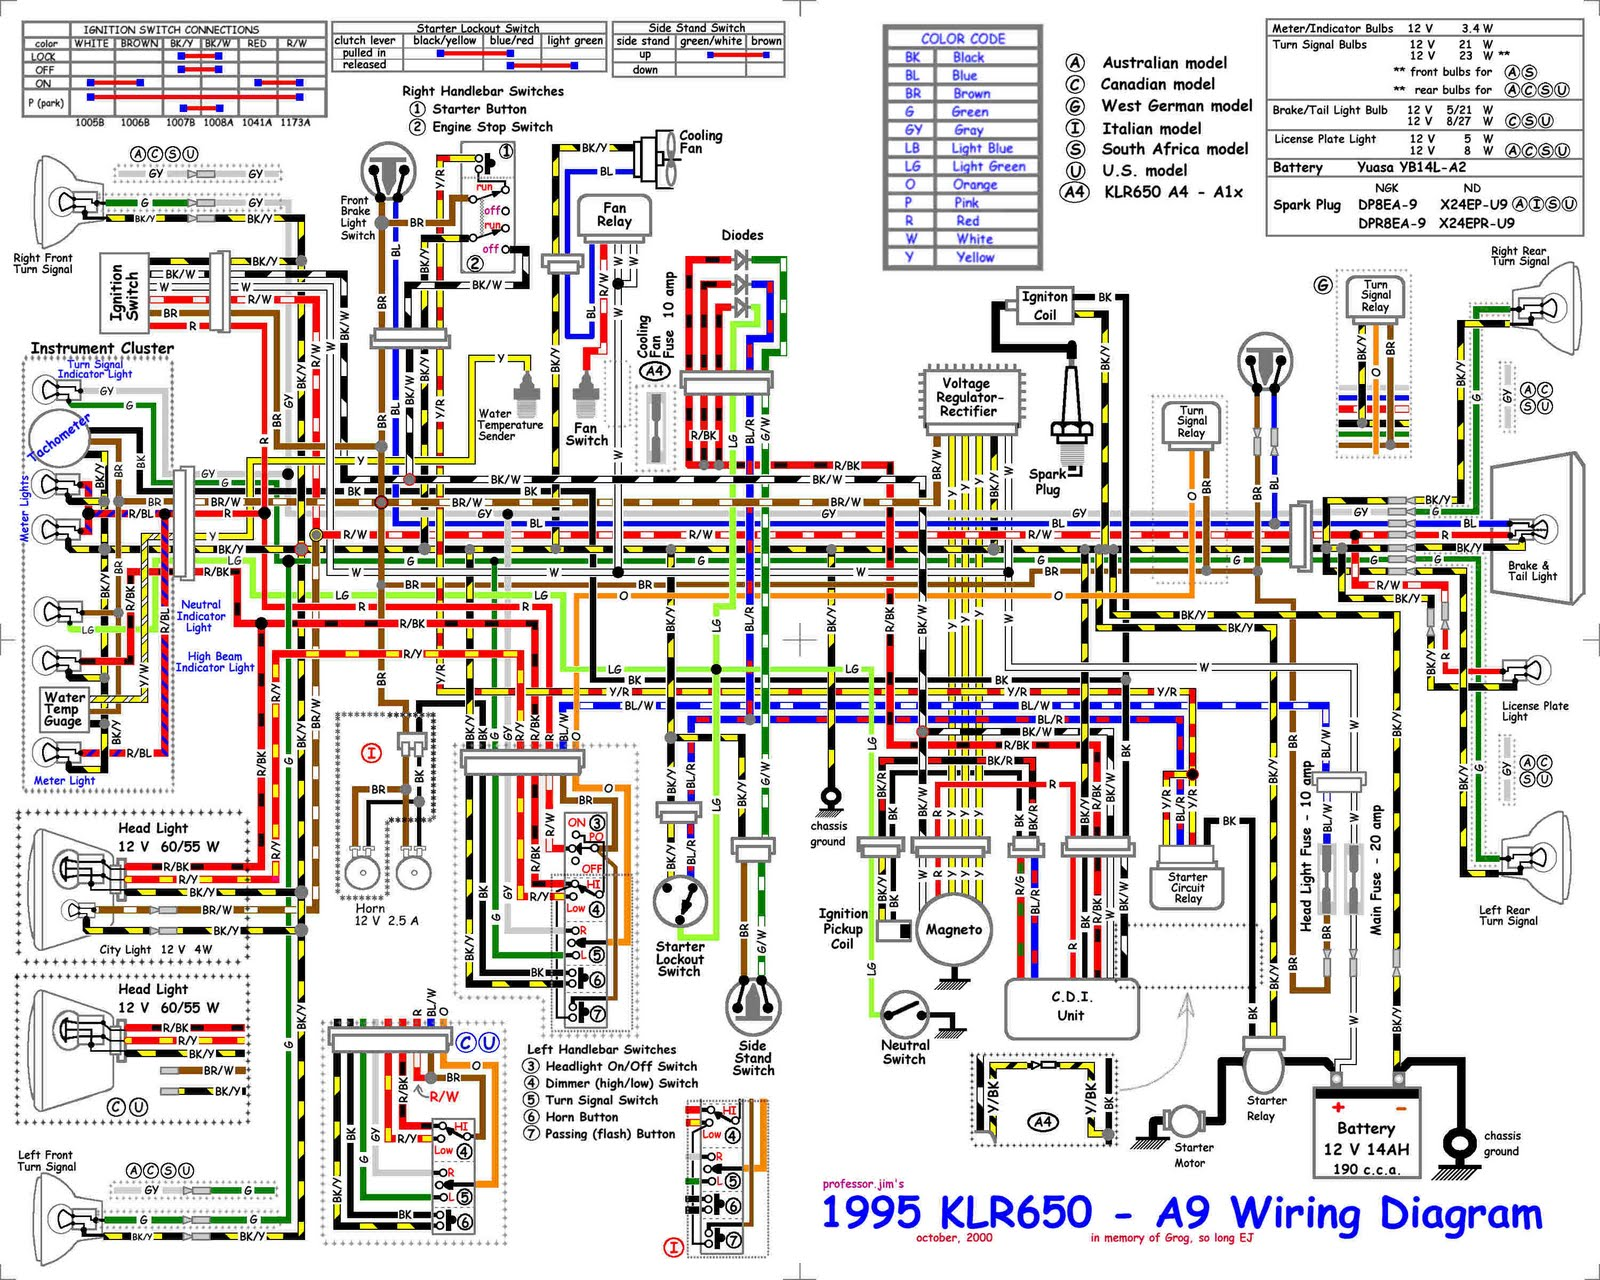 auto wiring diagram 1974 chevrolet monte carlo wiring diagram the chevrolet monte carlo is an american made two door coupe introduced for model year 1970 it was marketed as a personal luxury coupe through its entire